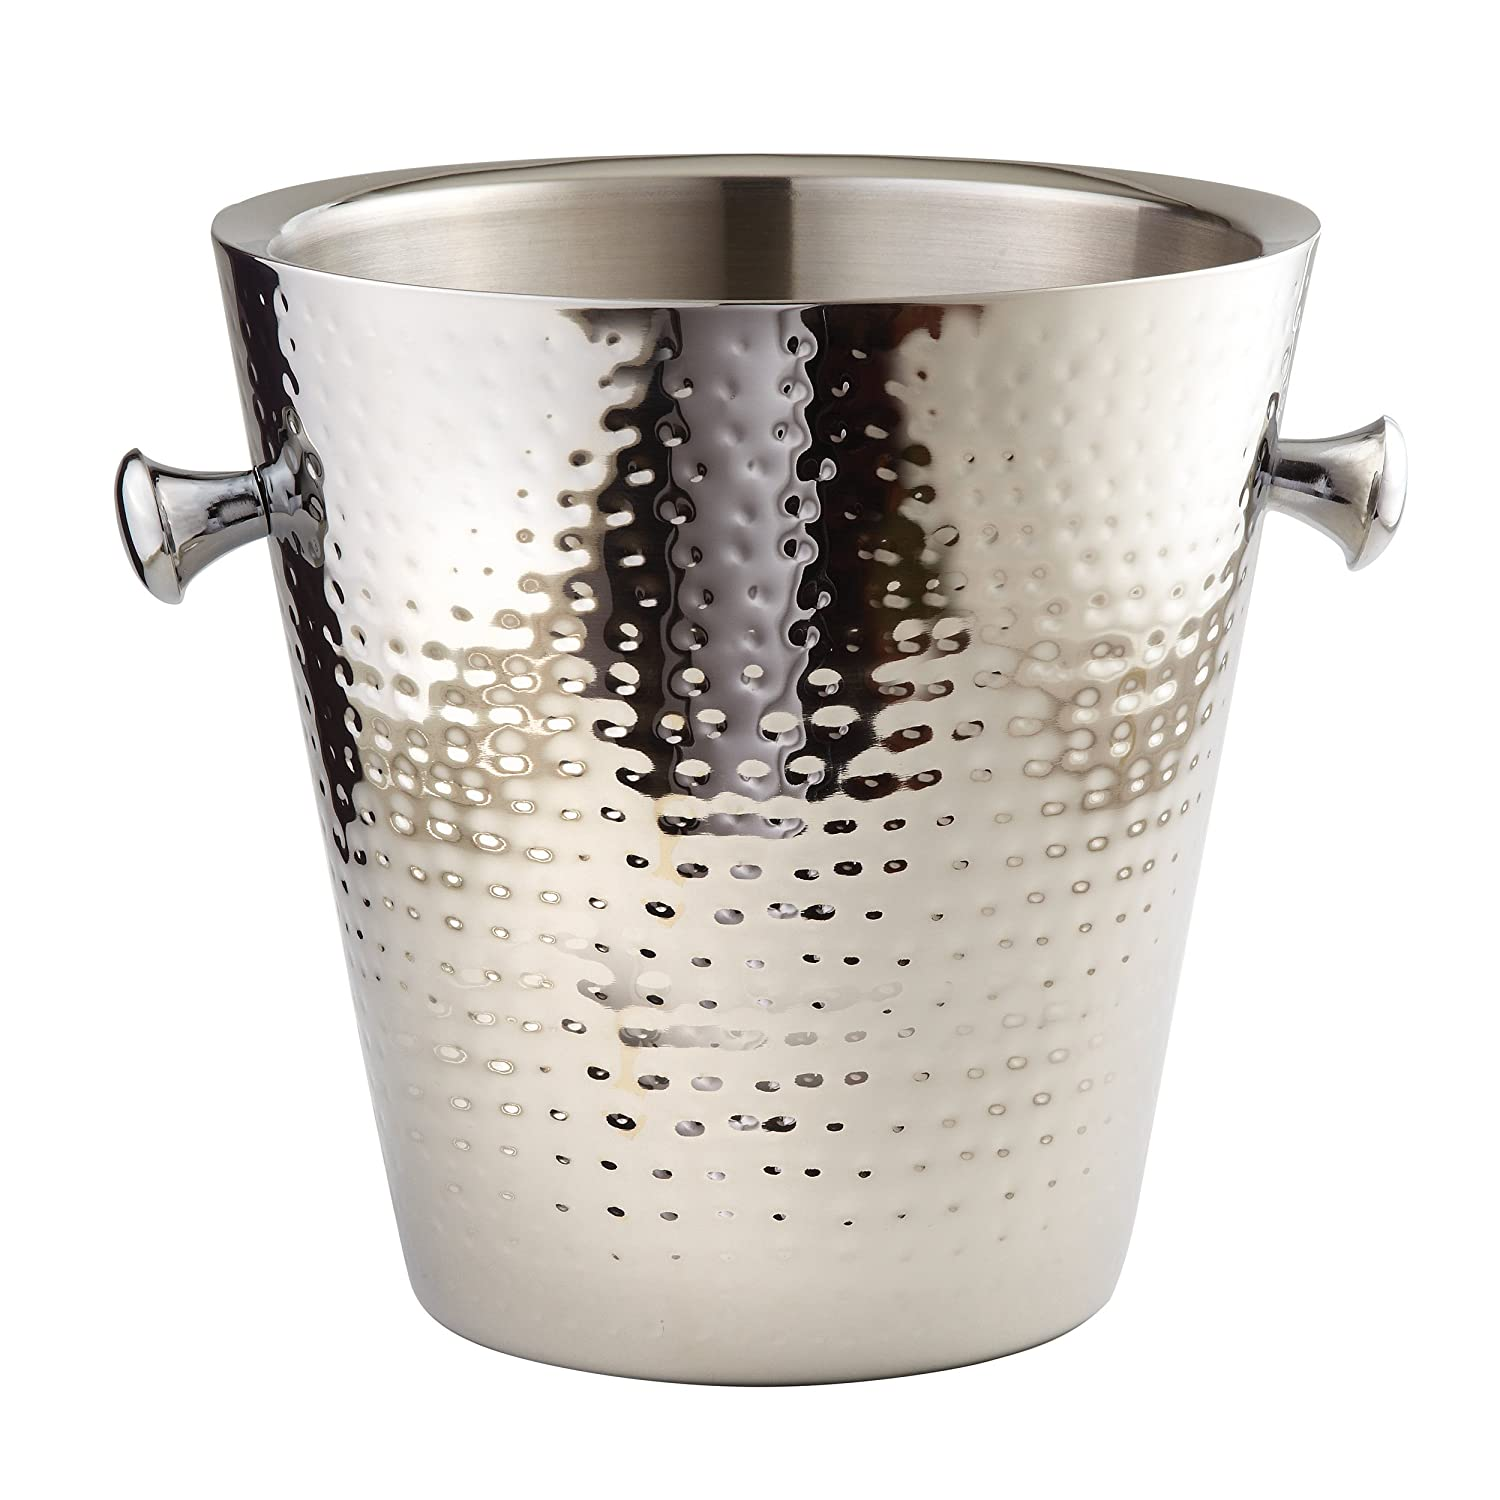 Elegance Hammered Stainless Steel Doublewall Champagne Bucket, 9